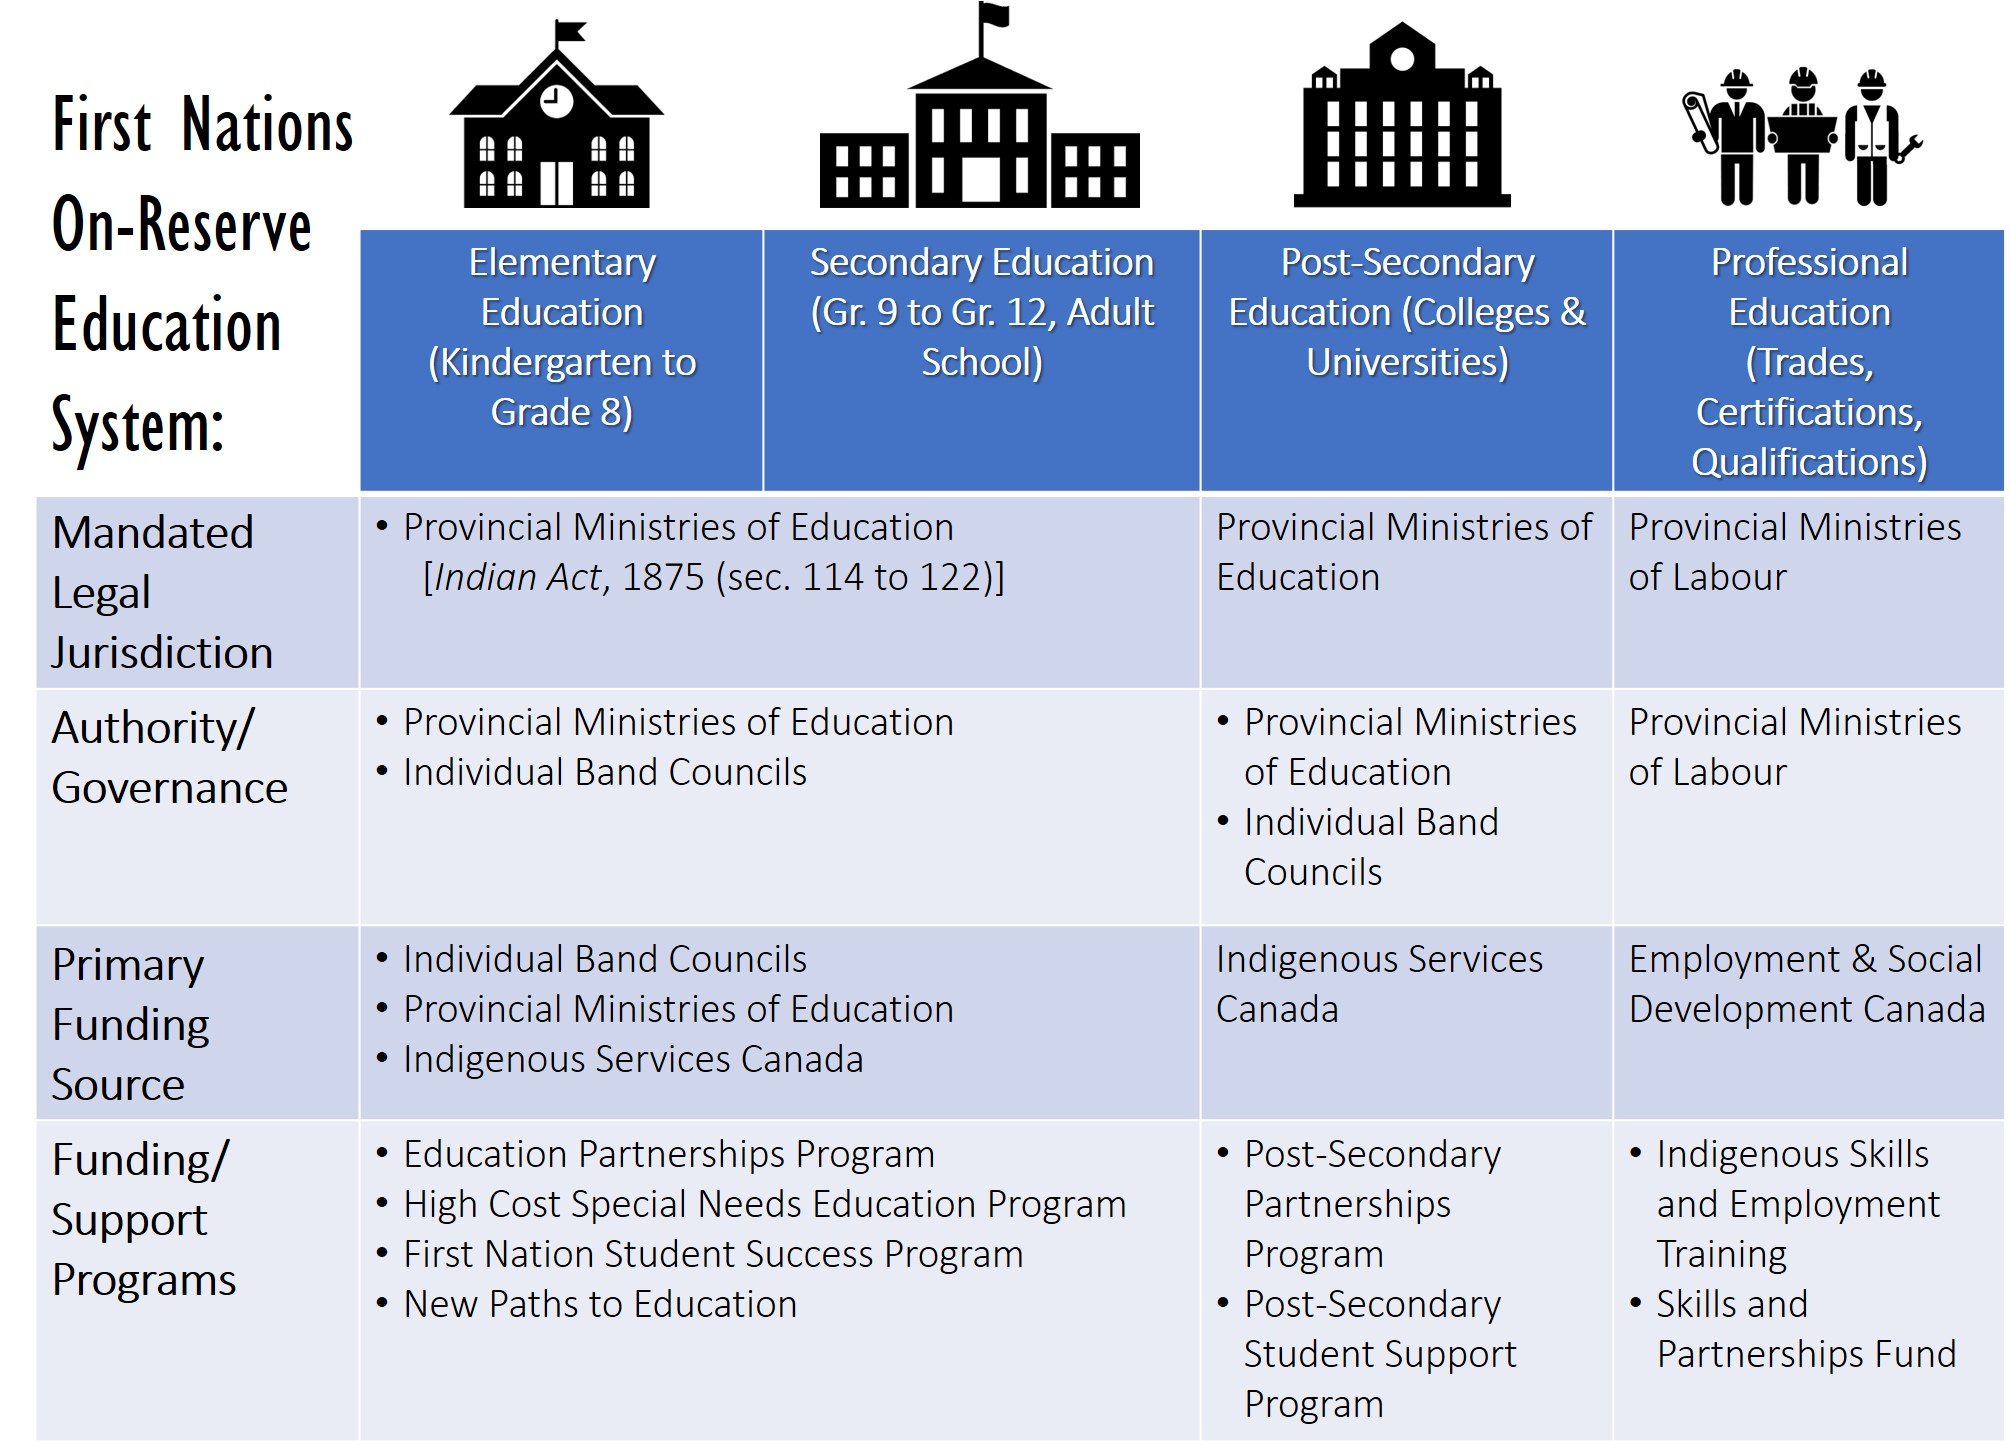 First Nation On-Reserve Education System Structure and Responsibility Breakdown. Research & graphic by: Pauline Galoustian